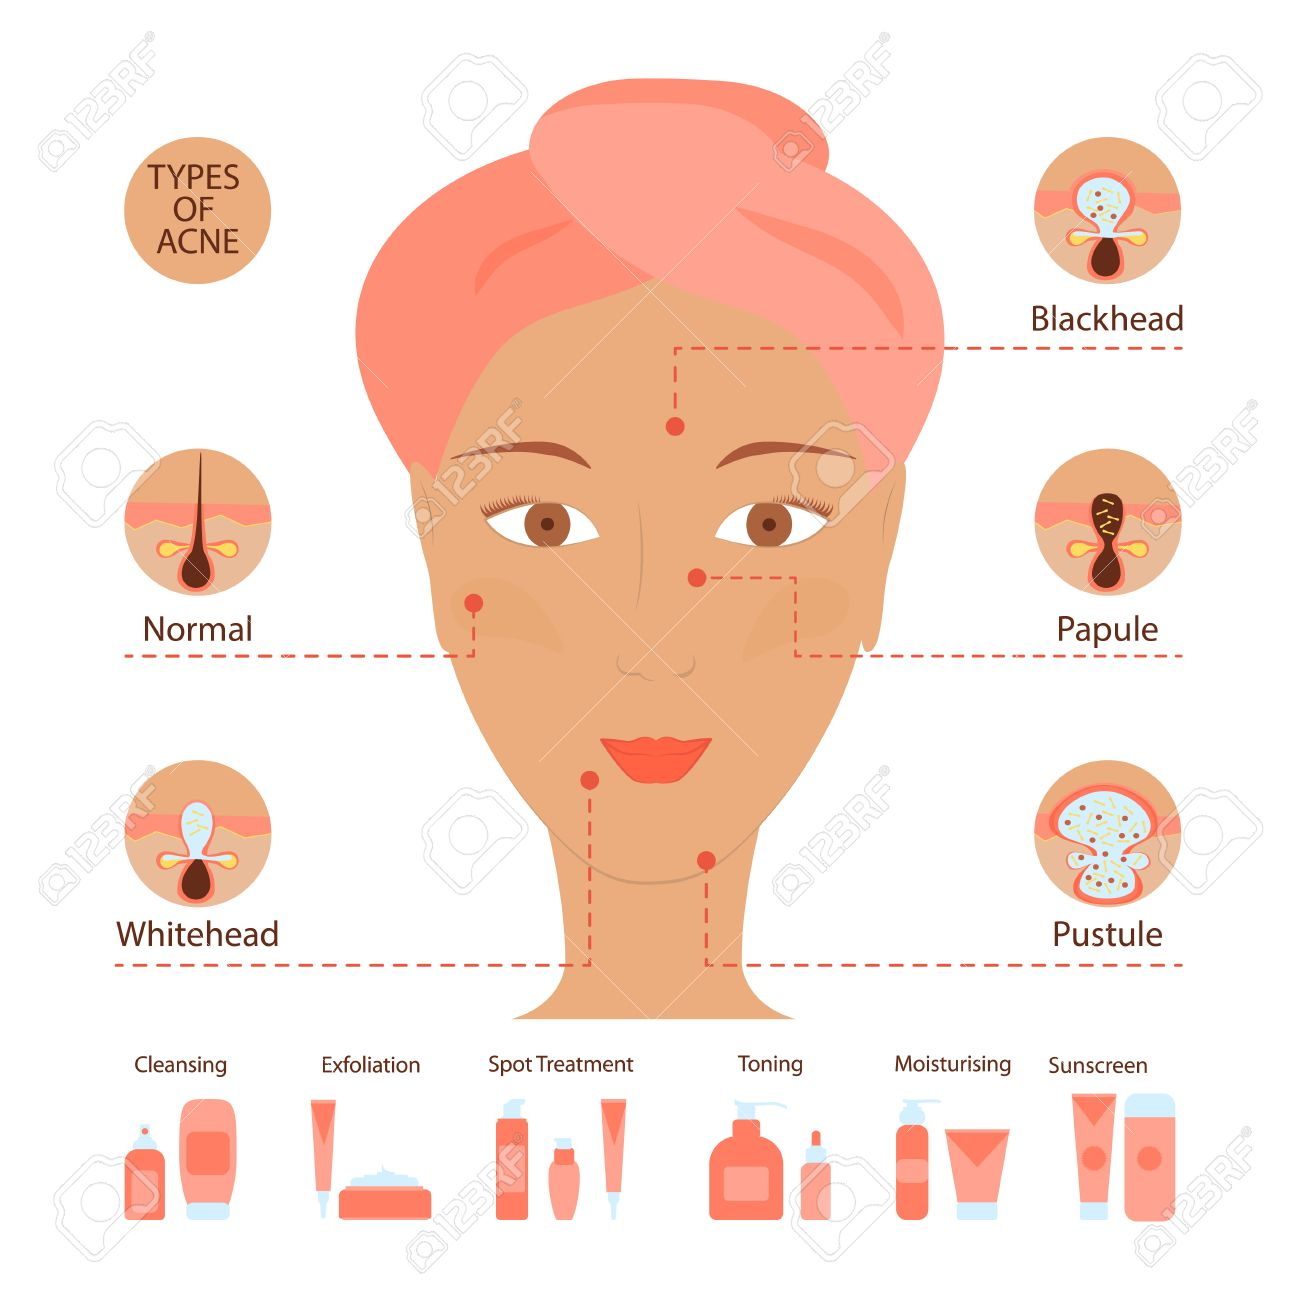 Types of acne pimples human skin poster  Facial treatments infographic